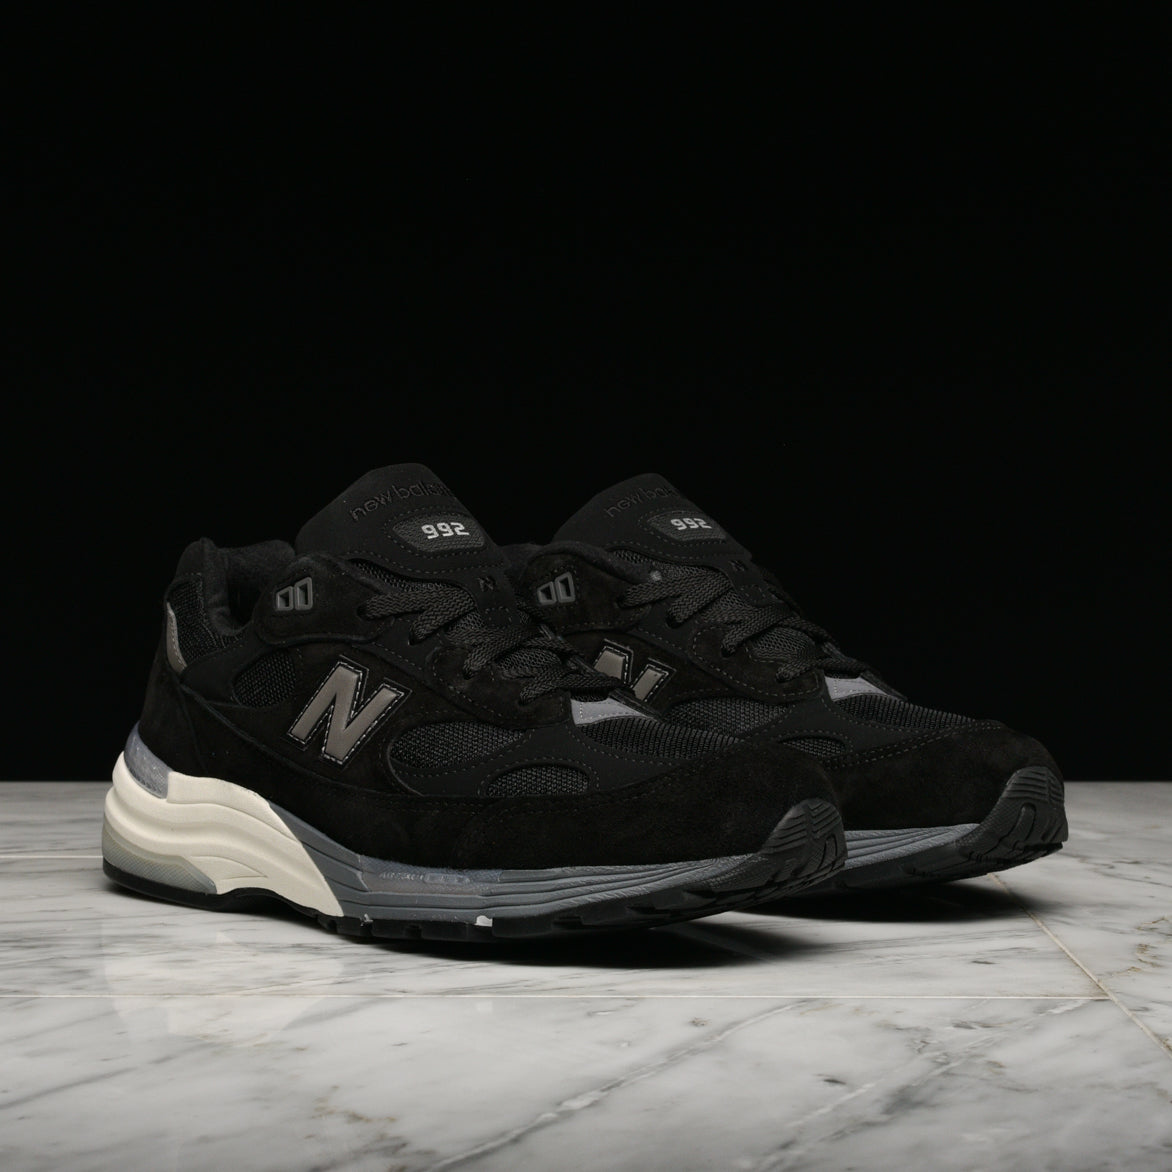 992 MADE IN USA- BLACK